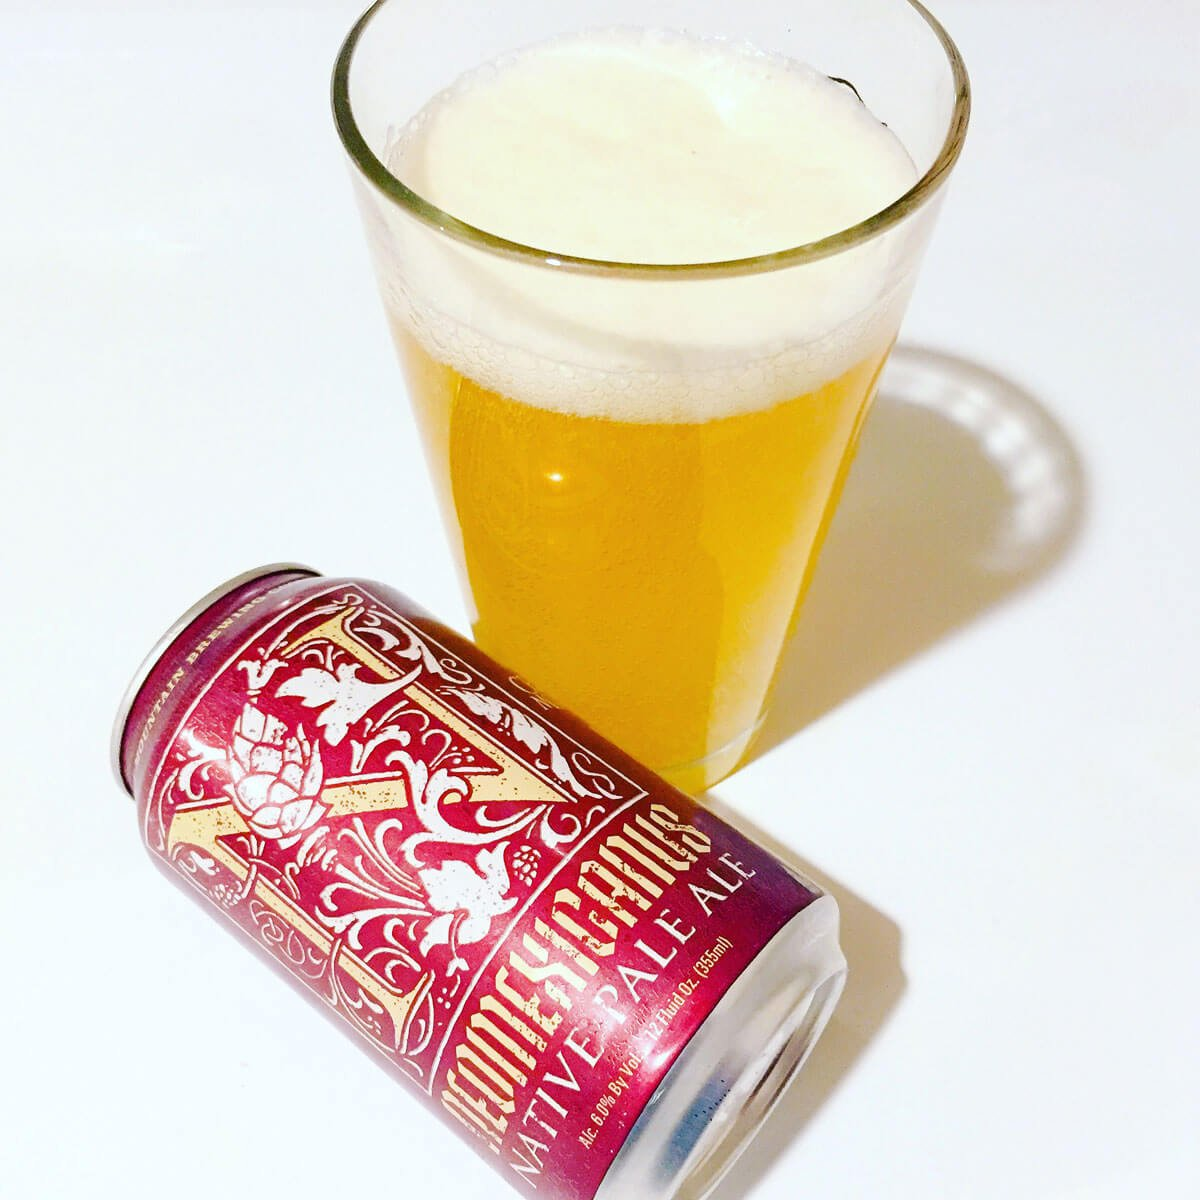 Neomexicanus Native, an American Pale Ale by Crazy Mountain Brewing Company